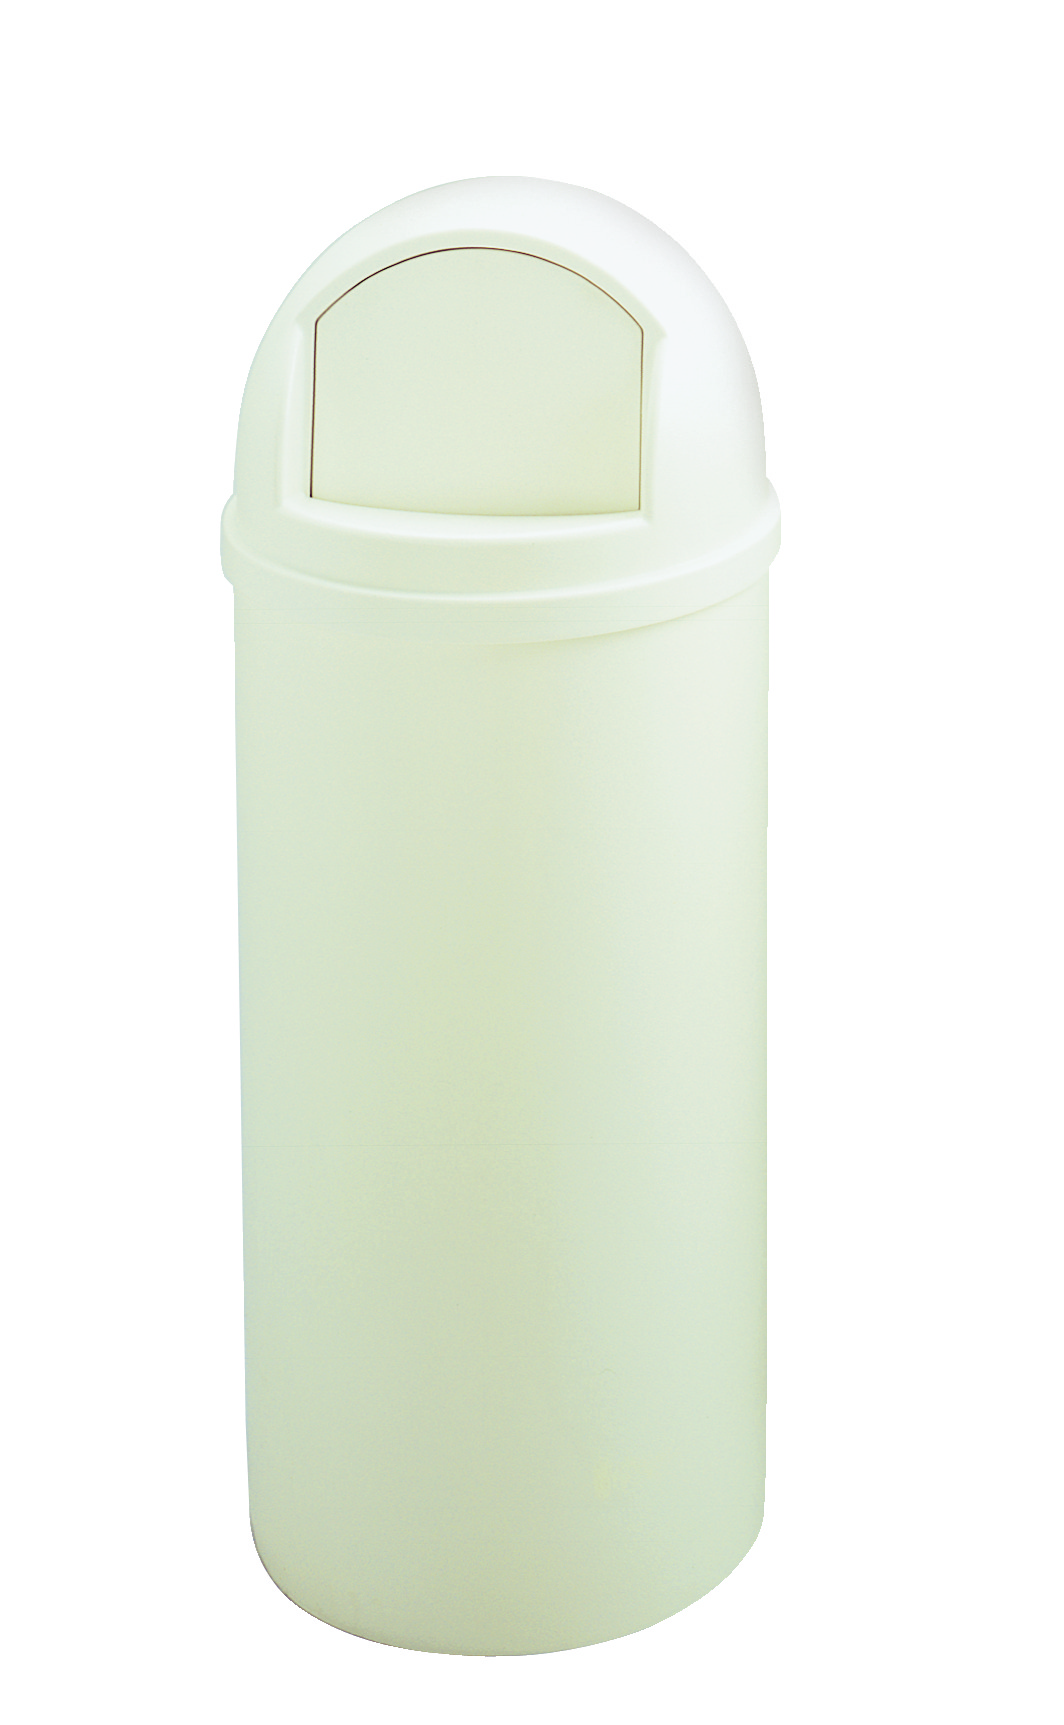 15gallon classic dometop trash container - Rubbermaid Garbage Cans